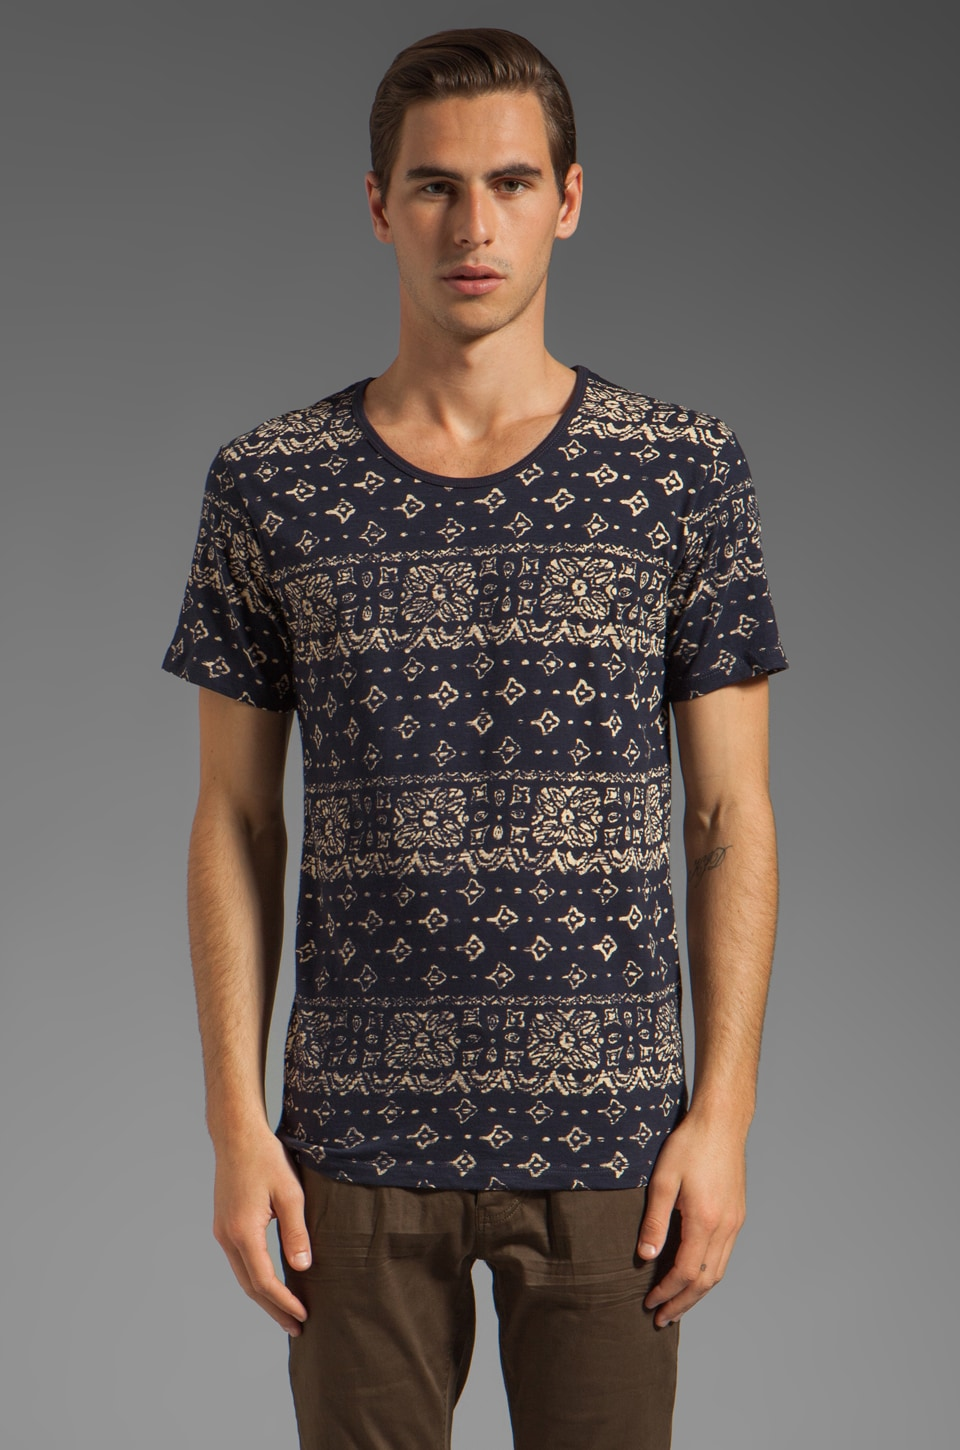 Shades of Grey by Micah Cohen Low Crewneck Tee in Navy Slub w/ Bandana Print